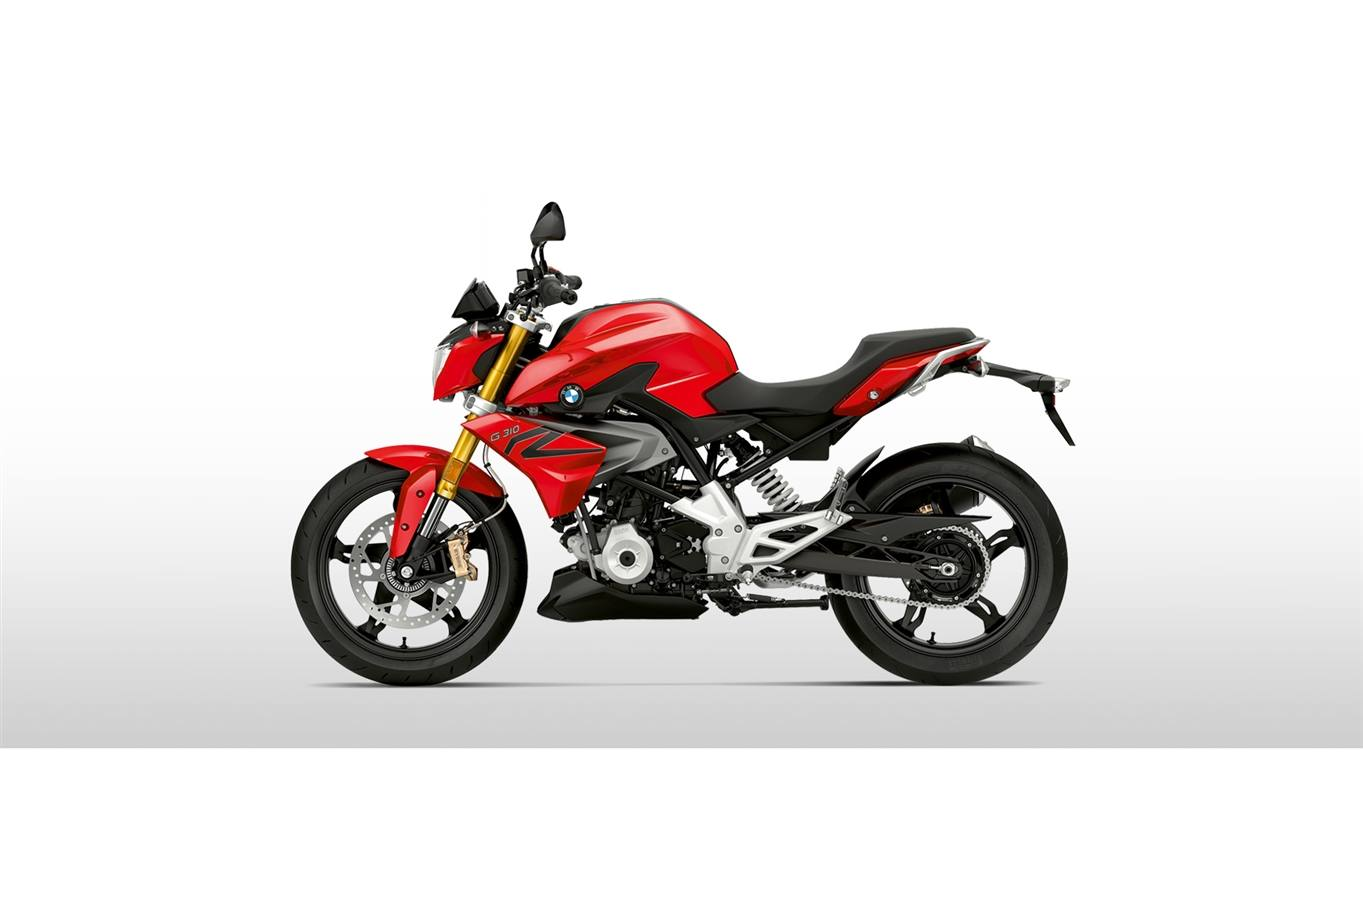 2020 Bmw G 310 R For Sale In Fort Myers Fl Gulf Coast Motorcycles Fort Myers Fl 239 481 8100